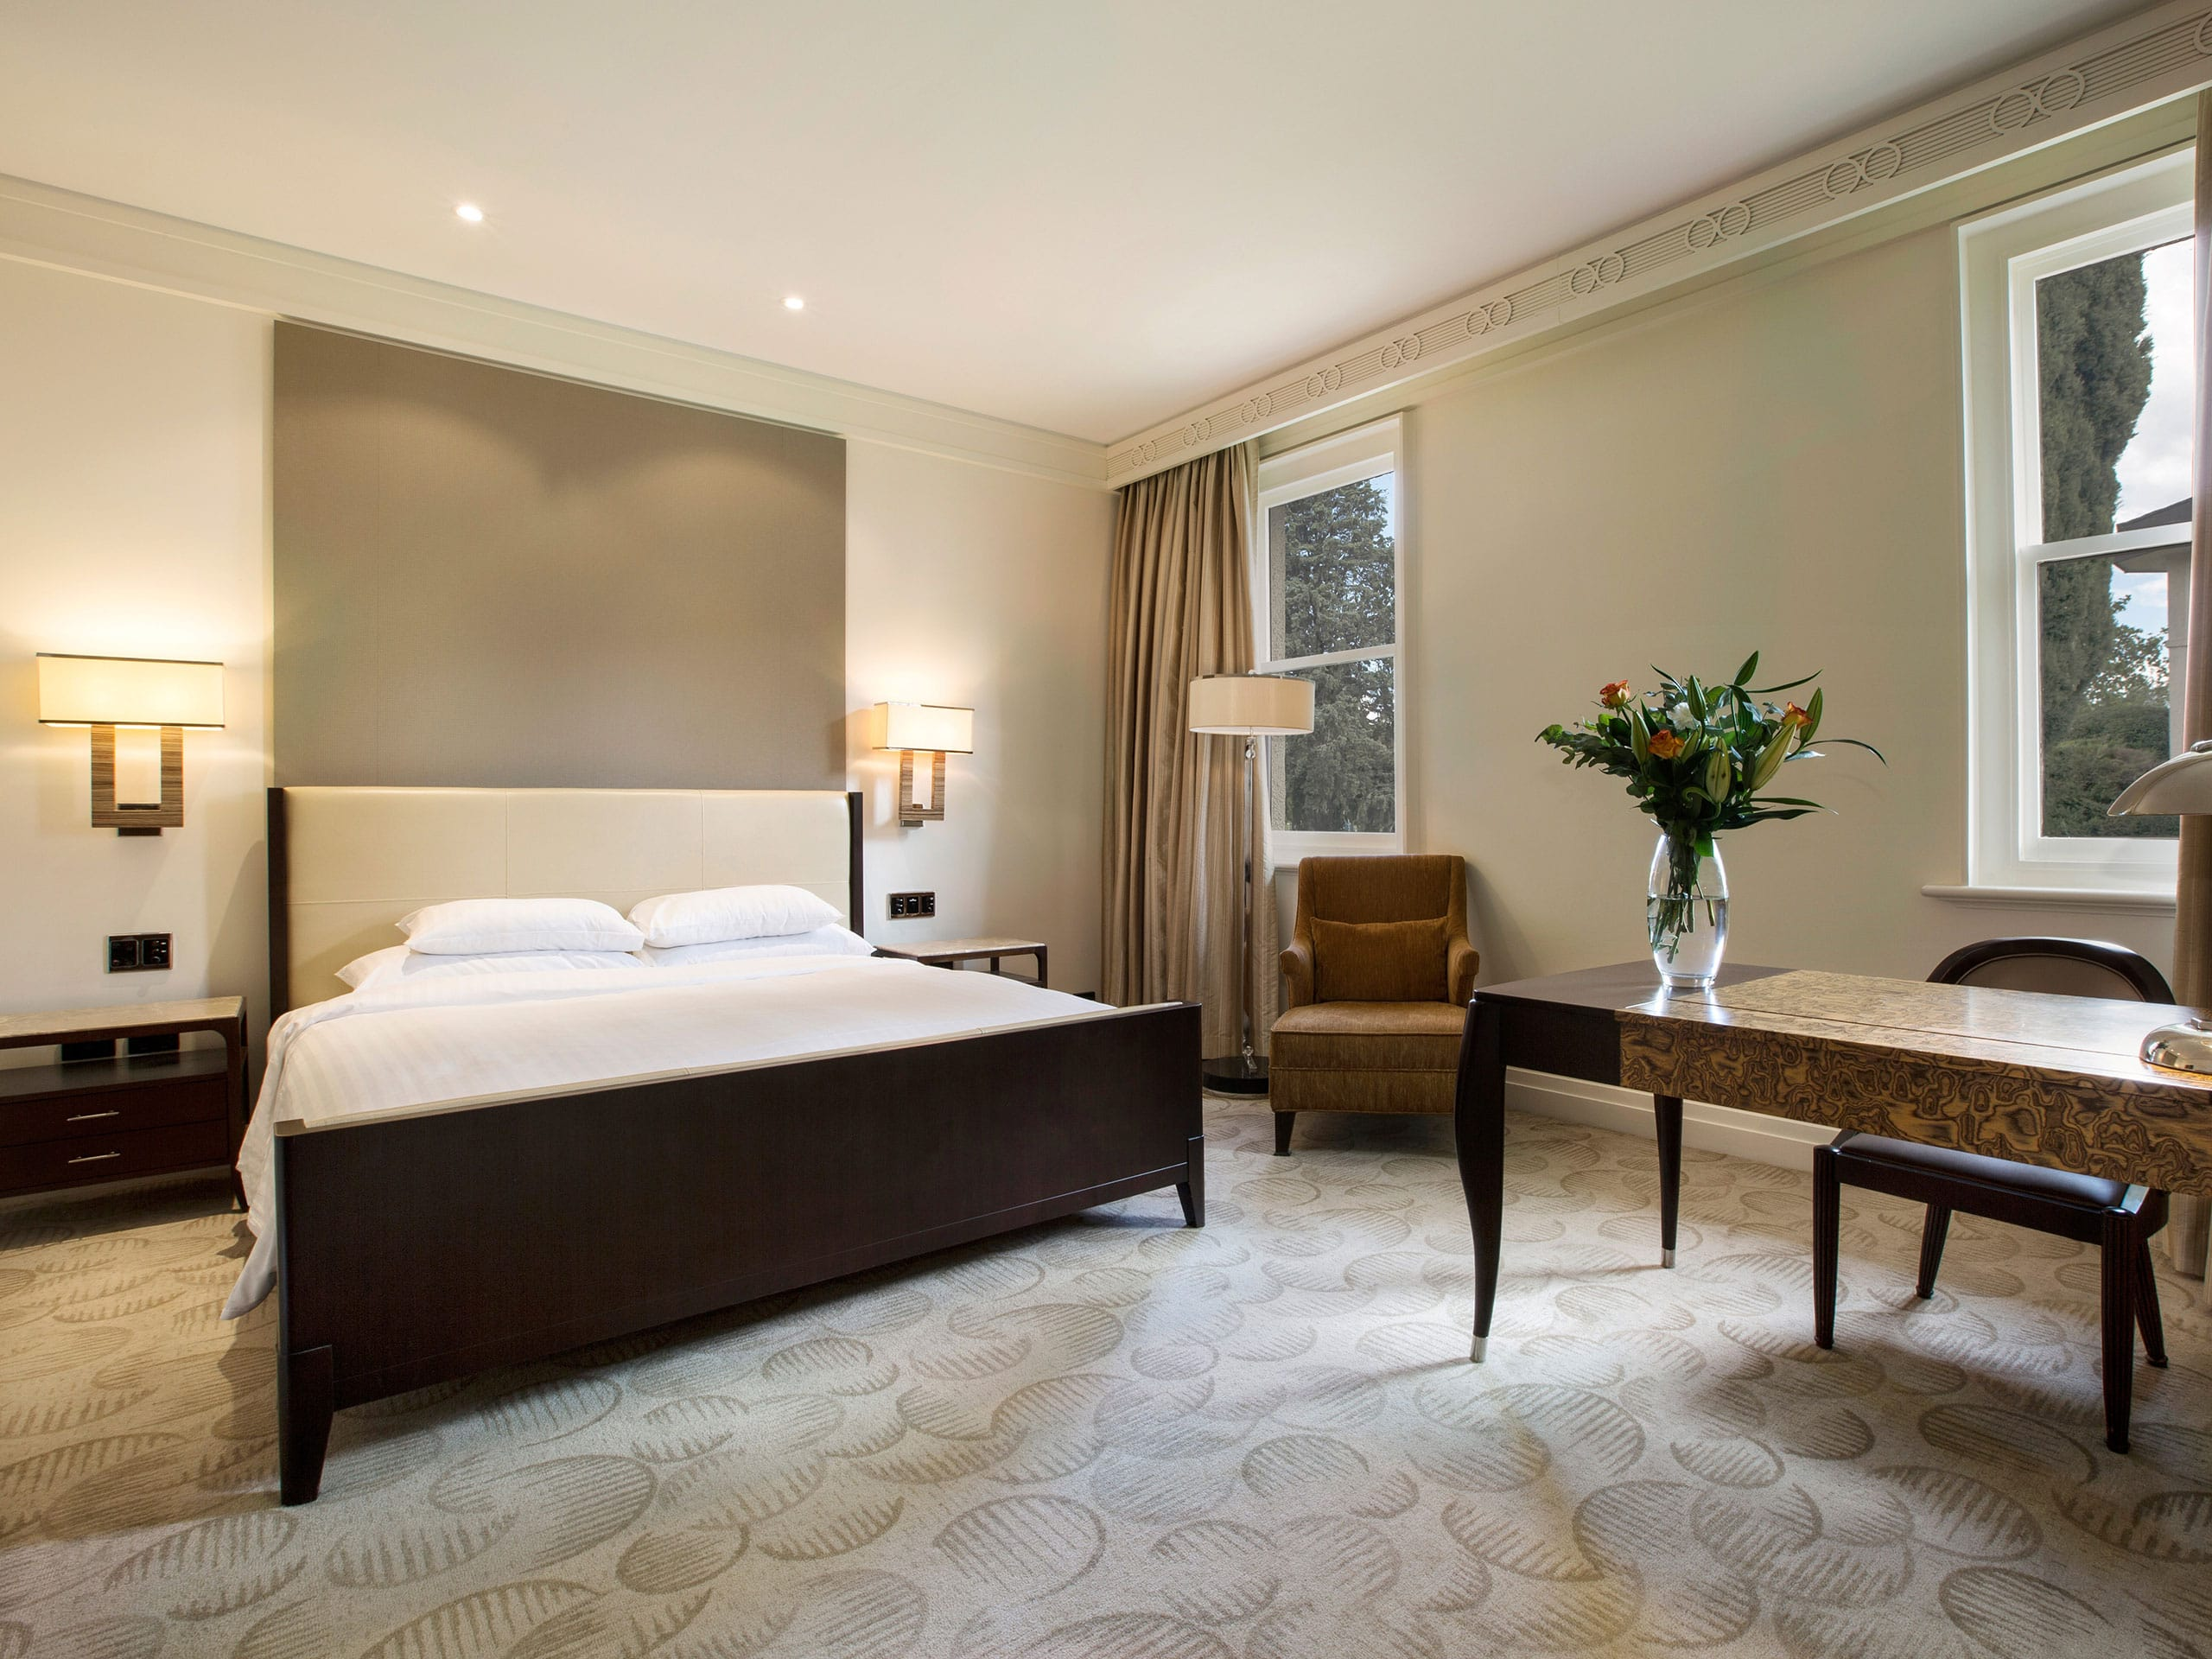 Bedding Stores Canberra 5 Star Hotel Accommodation In Canberra Hyatt Hotel Canberra